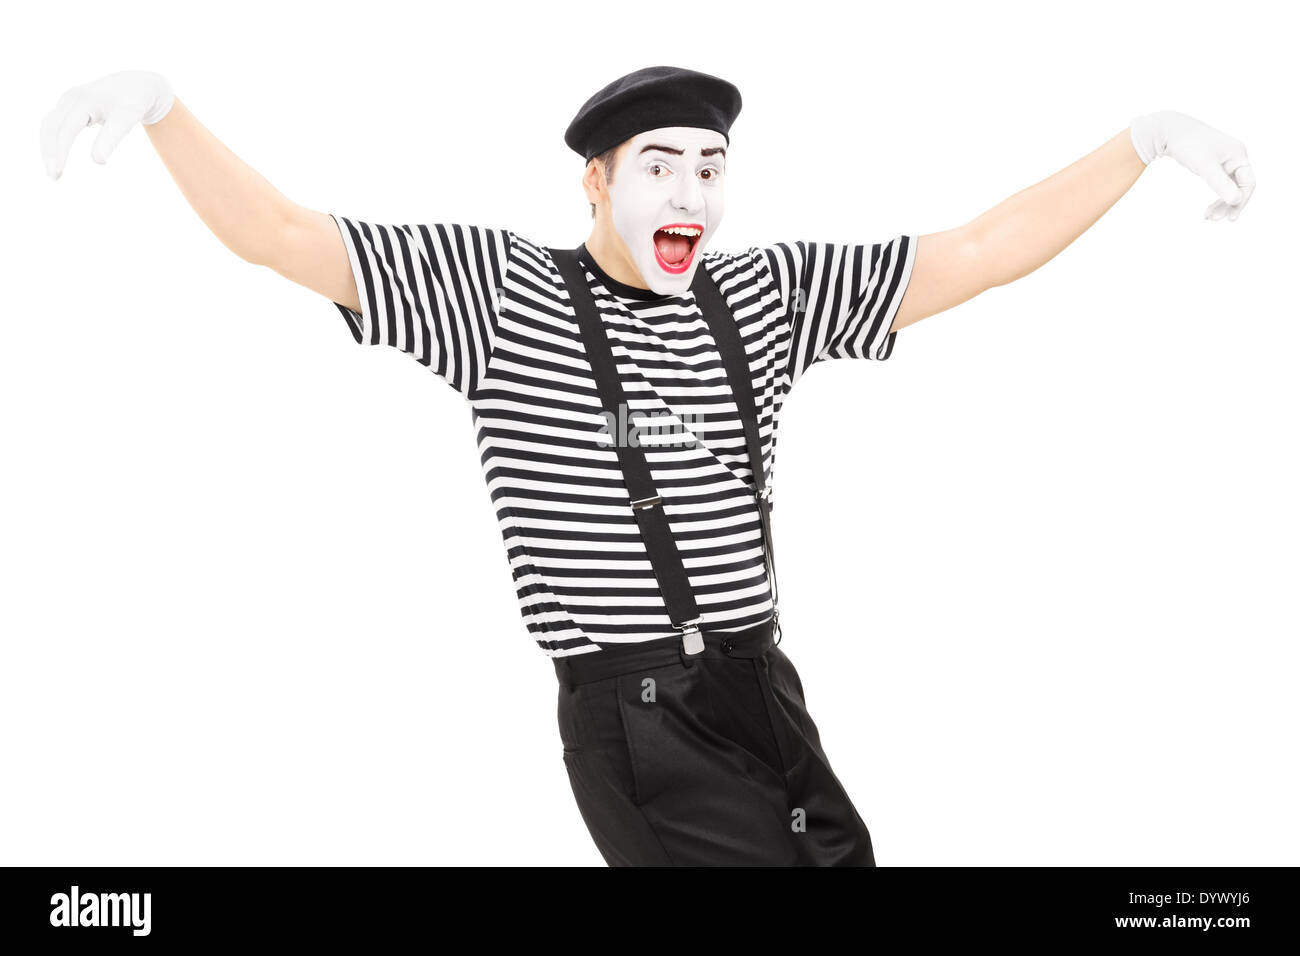 Happy mime artist dancing - Stock Image